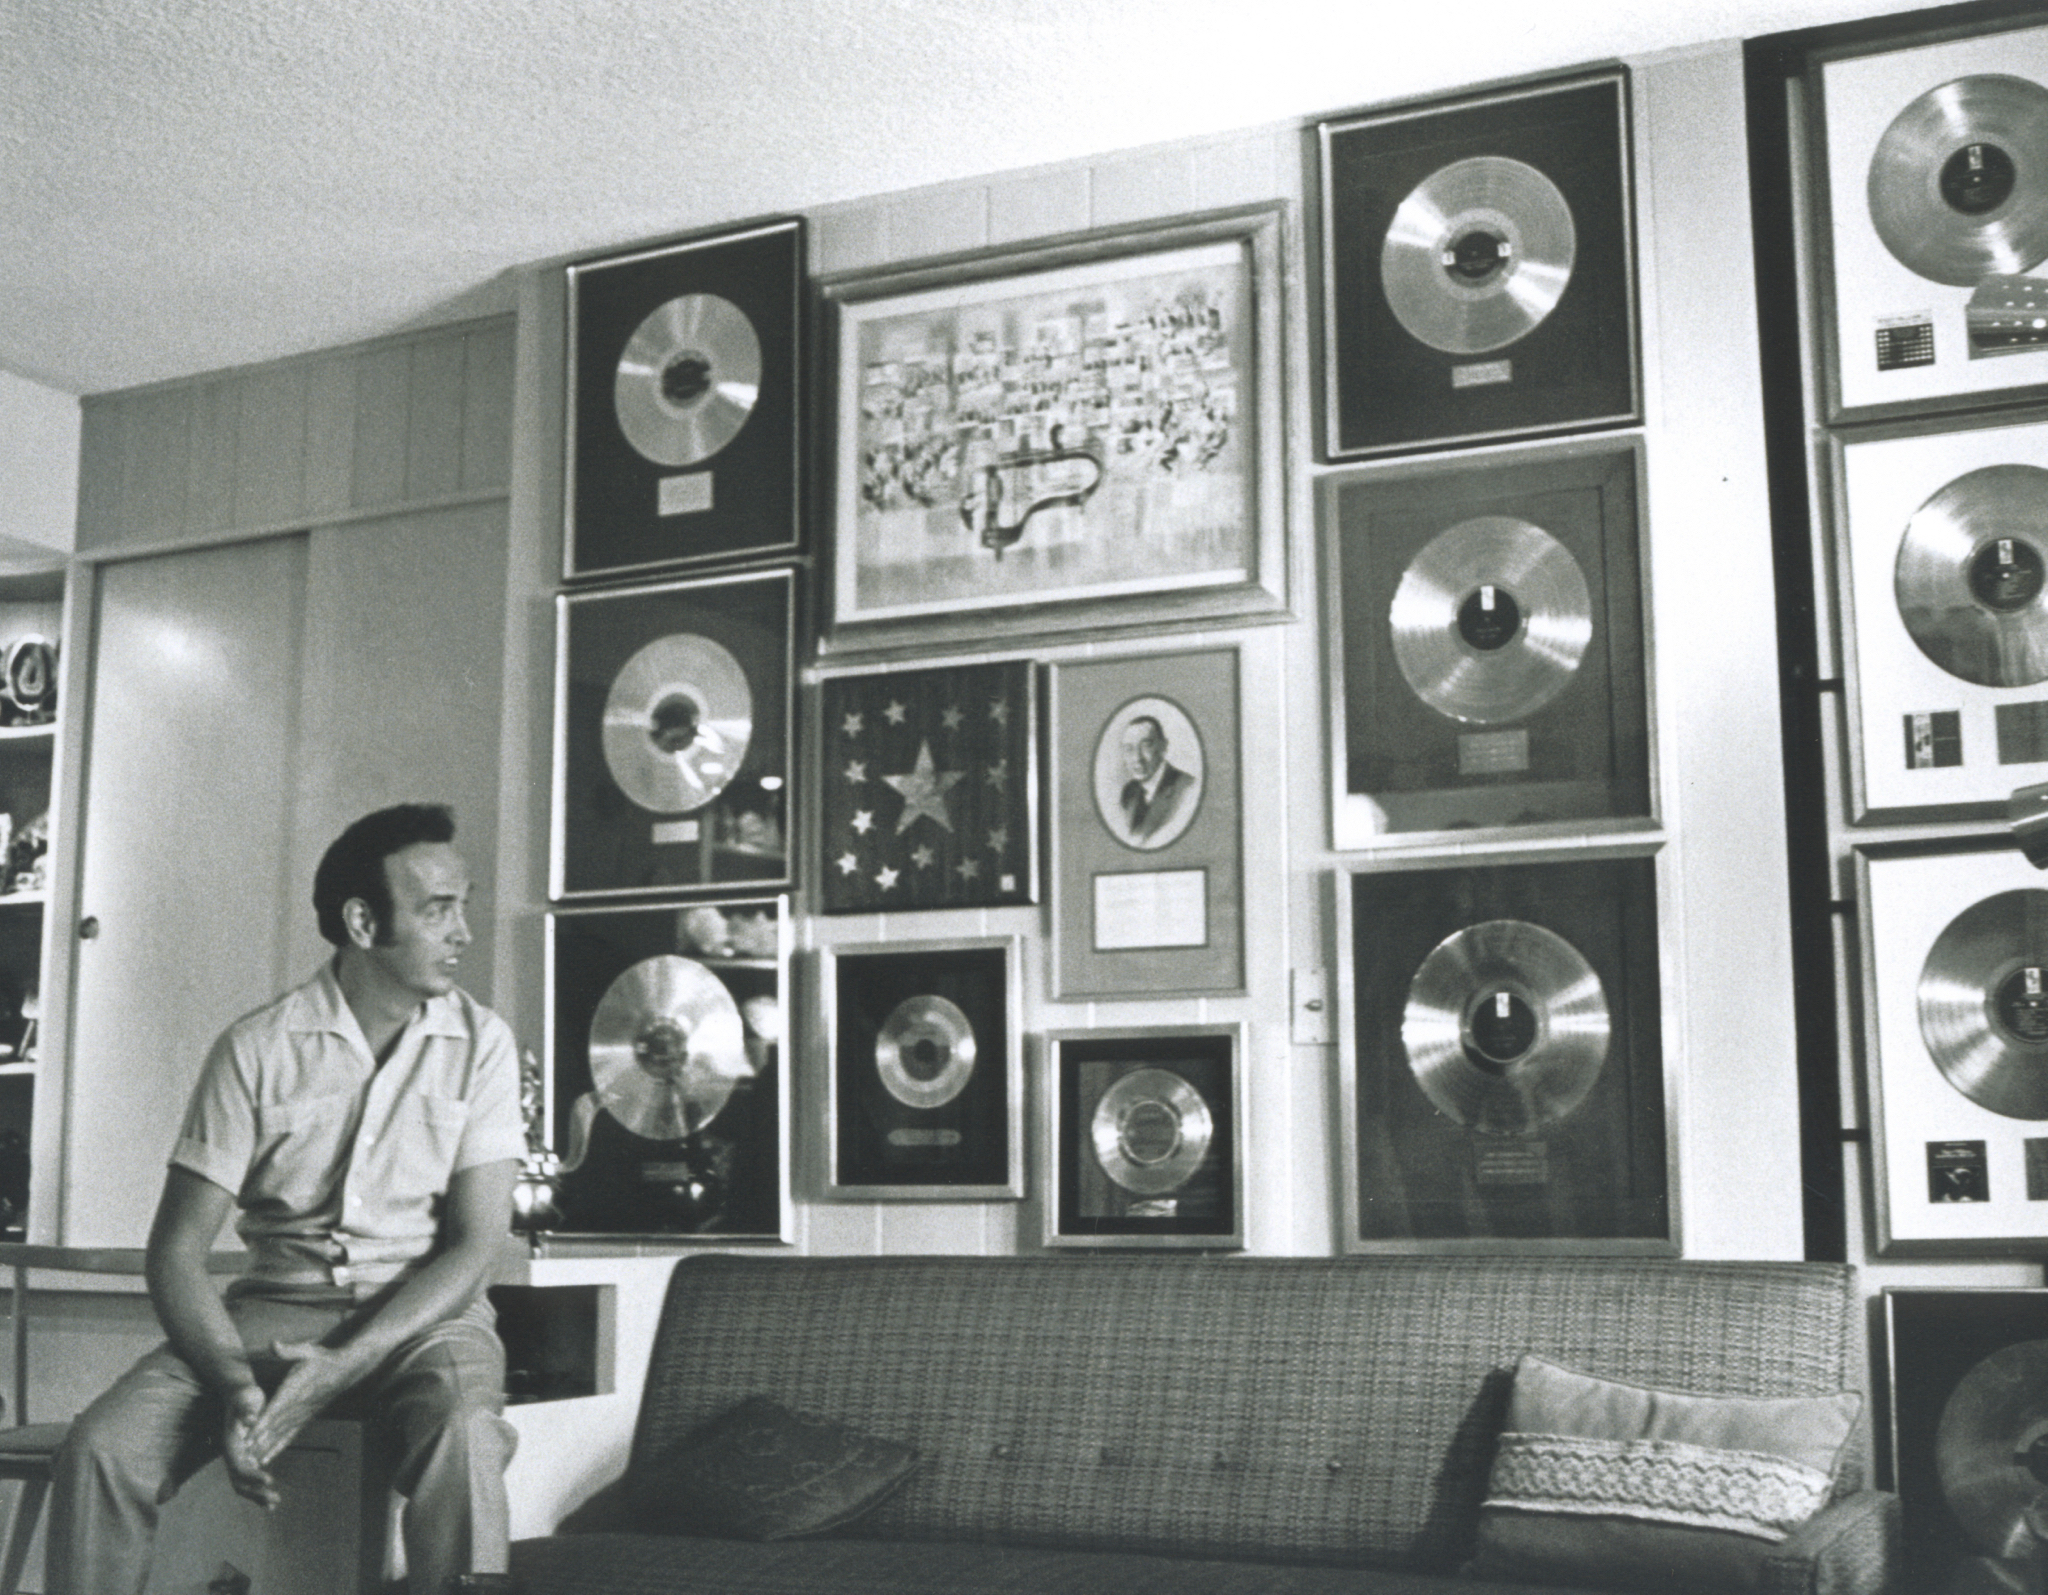 Roger and his Gold Records